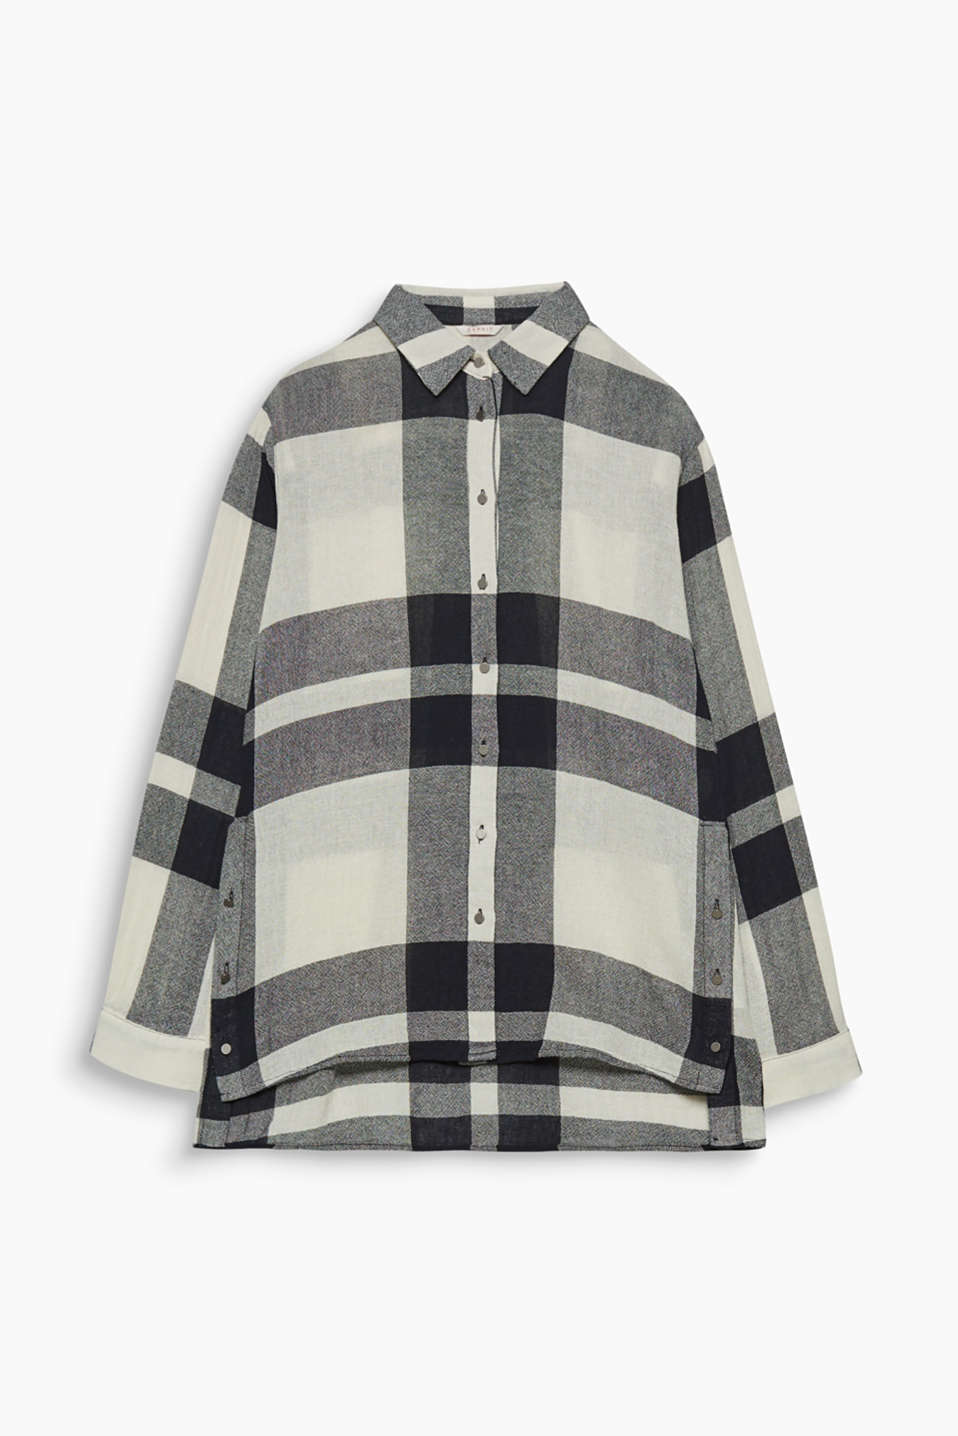 This textured blouse with interwoven XXL checks and button-down hem slits indicates the larger the better!